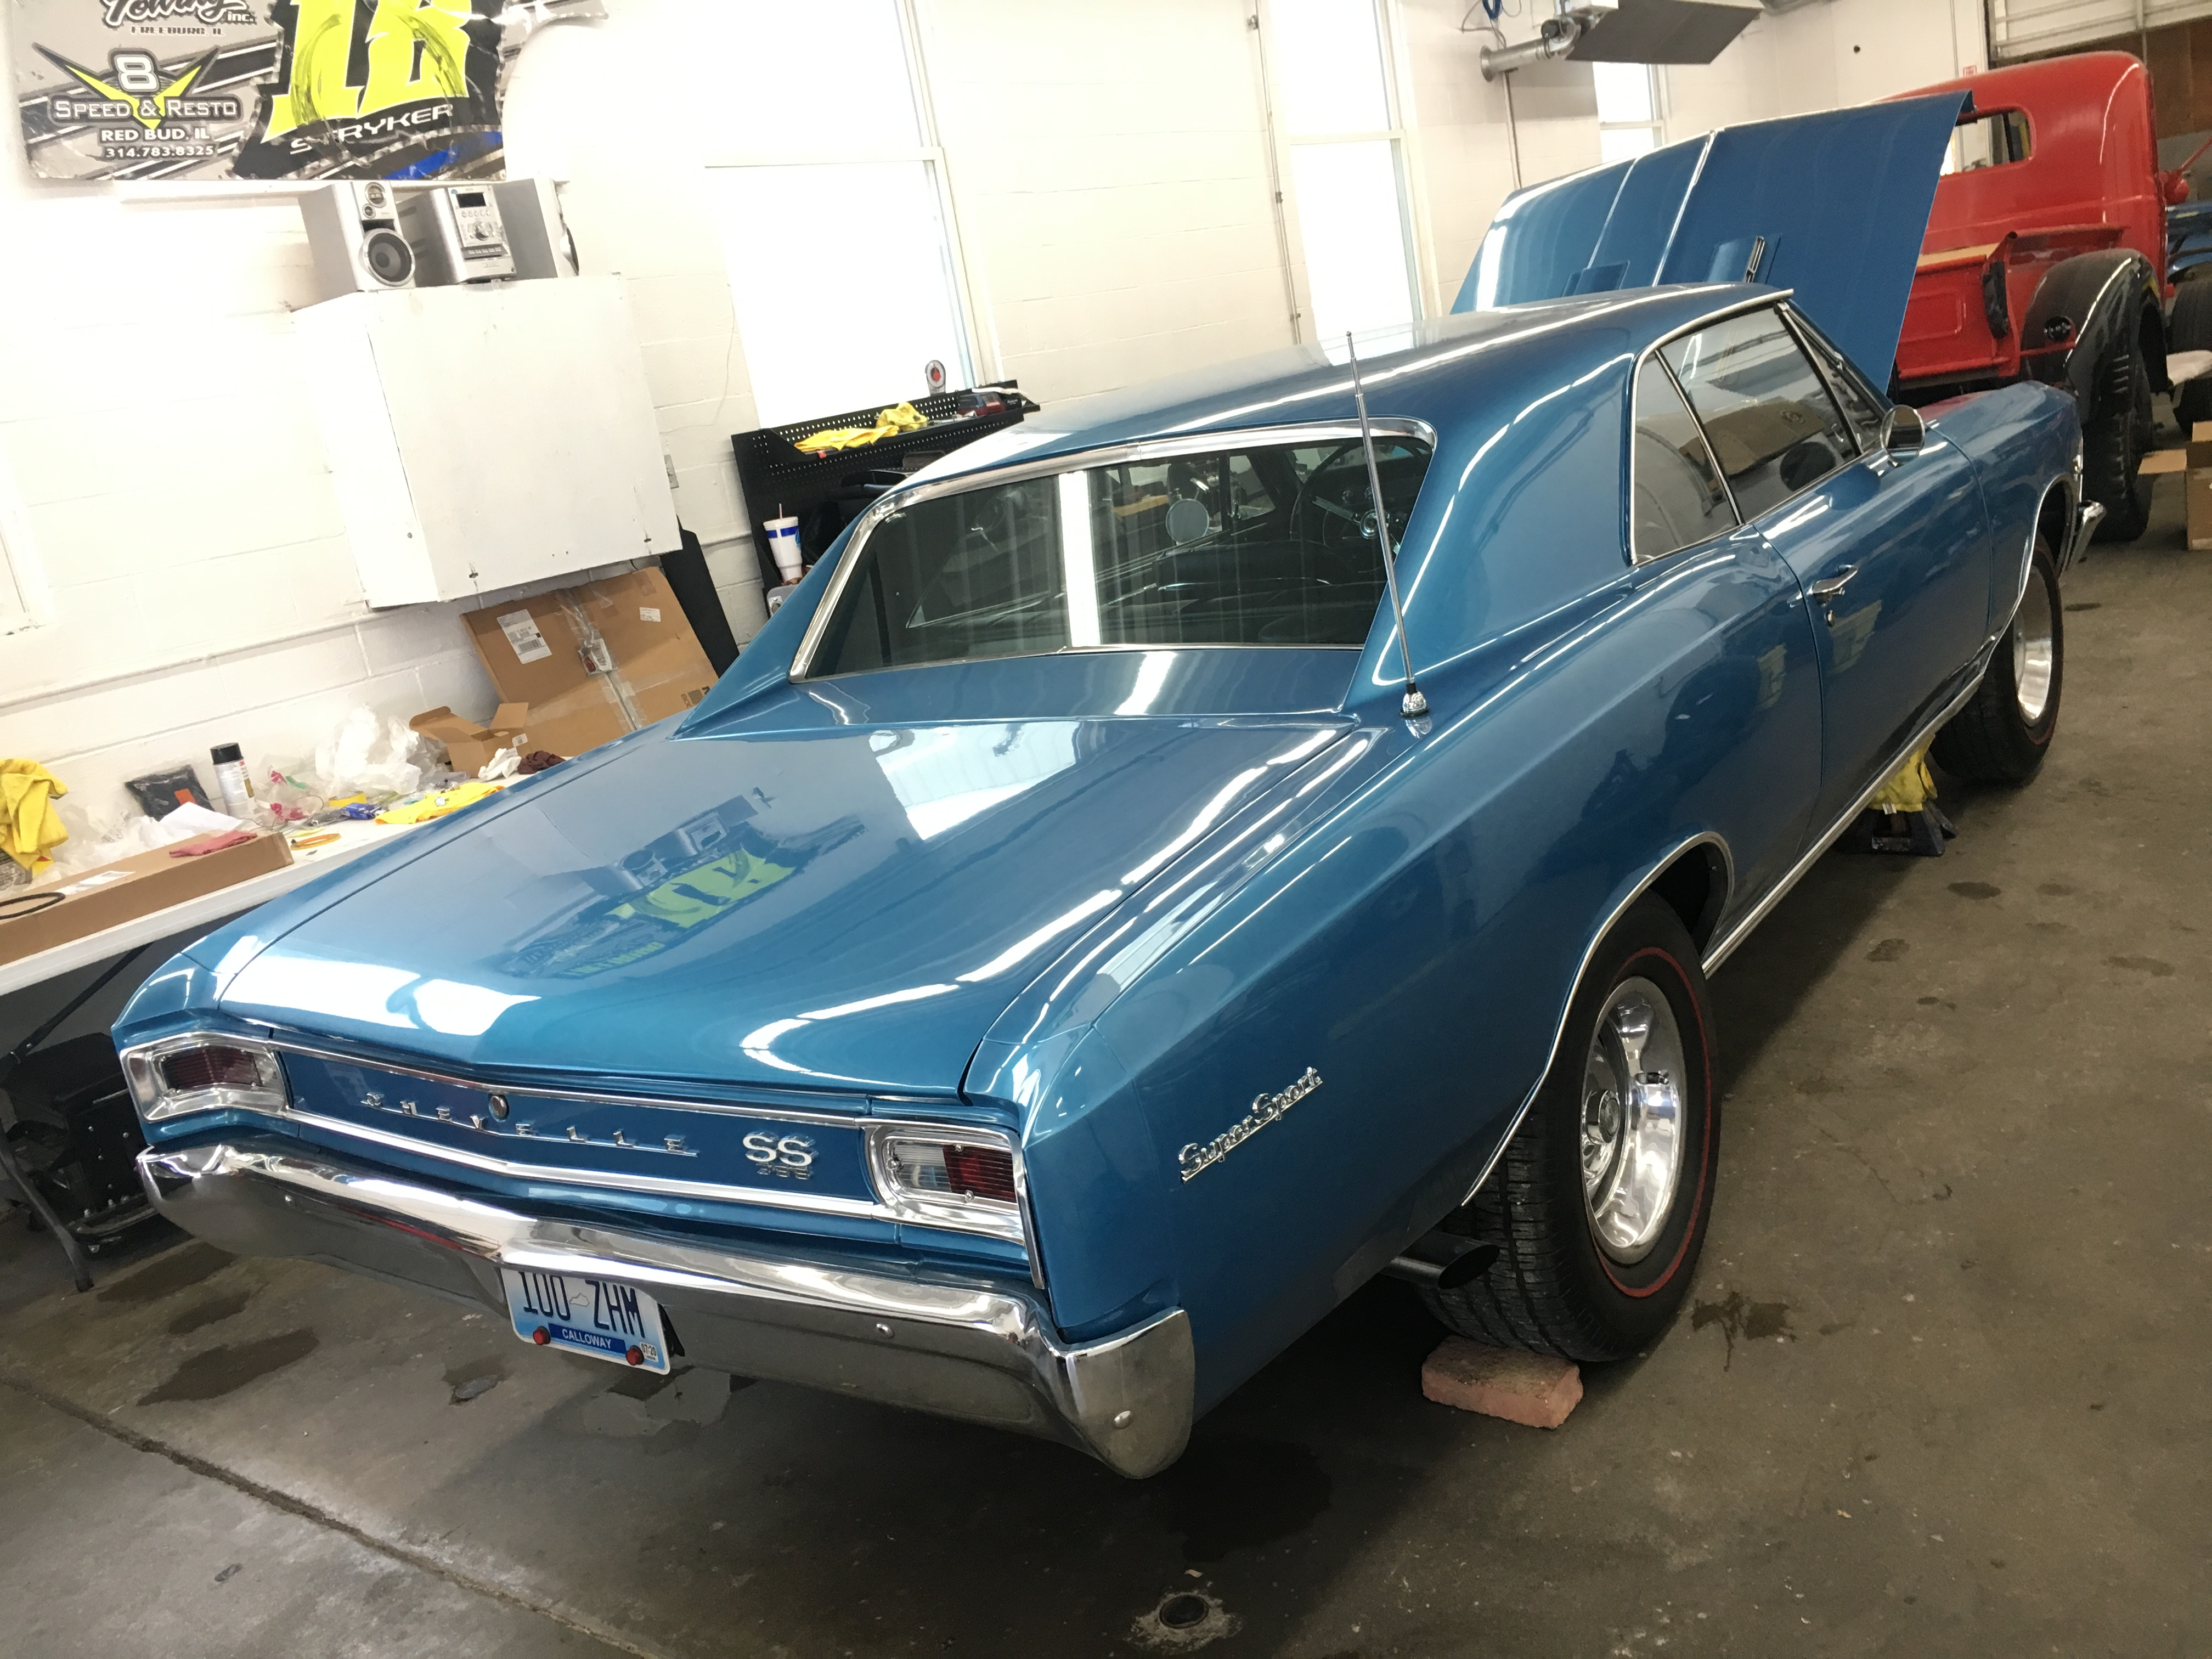 1966 Chevrolet Chevelle Mechanical Repairs at V8 Speed and Resto Shop